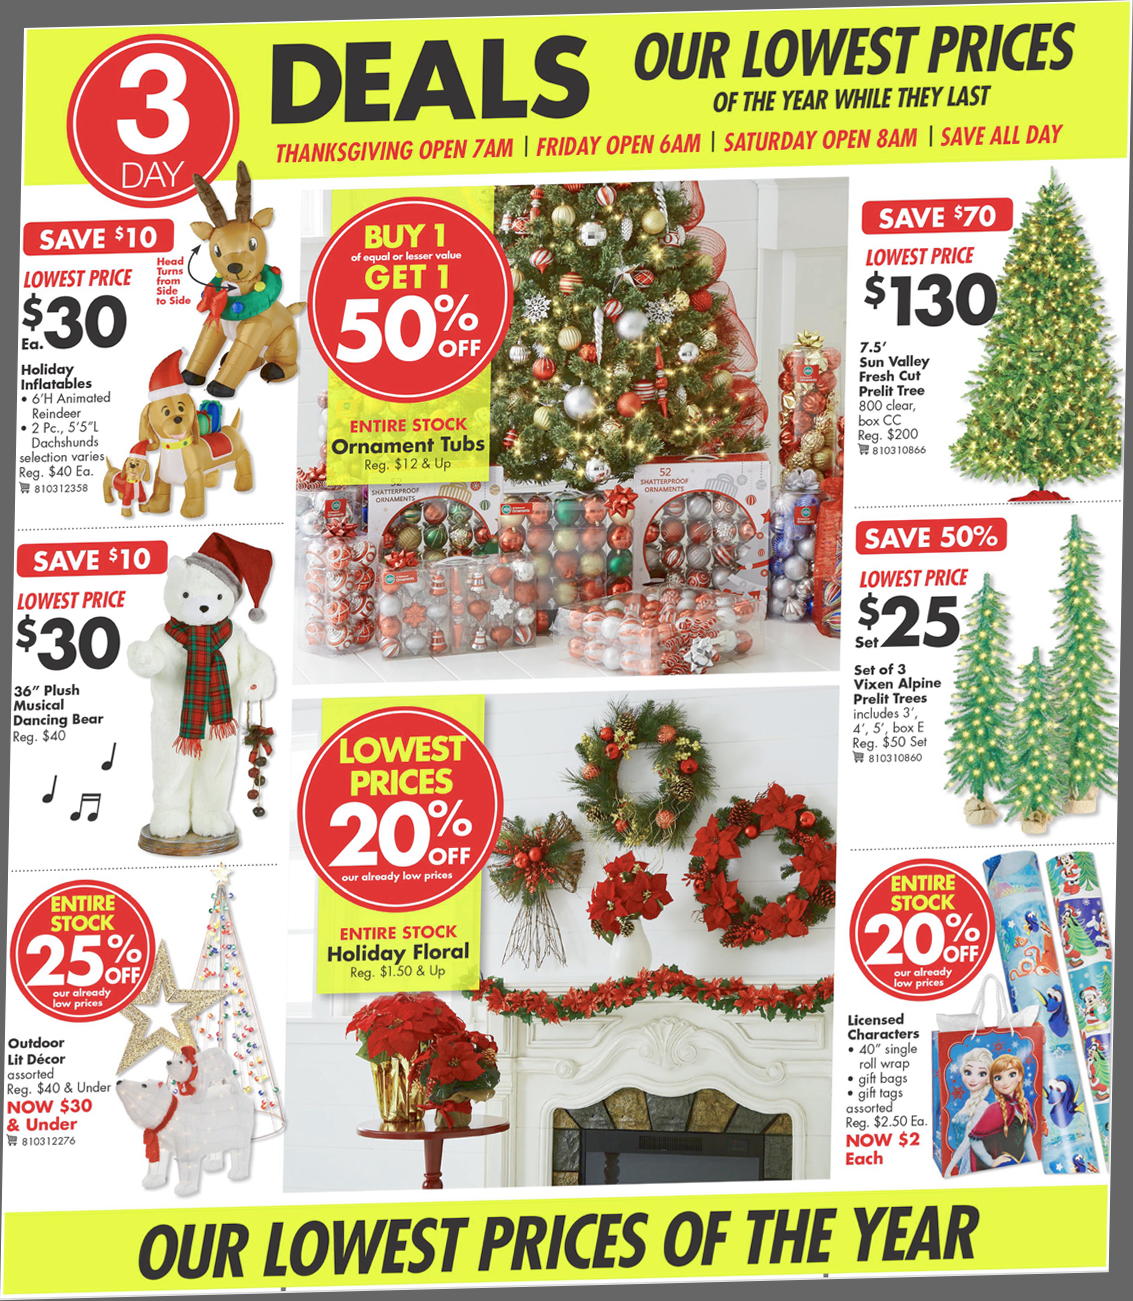 Big Lots Black Friday 2018 Sale & Furniture Deals